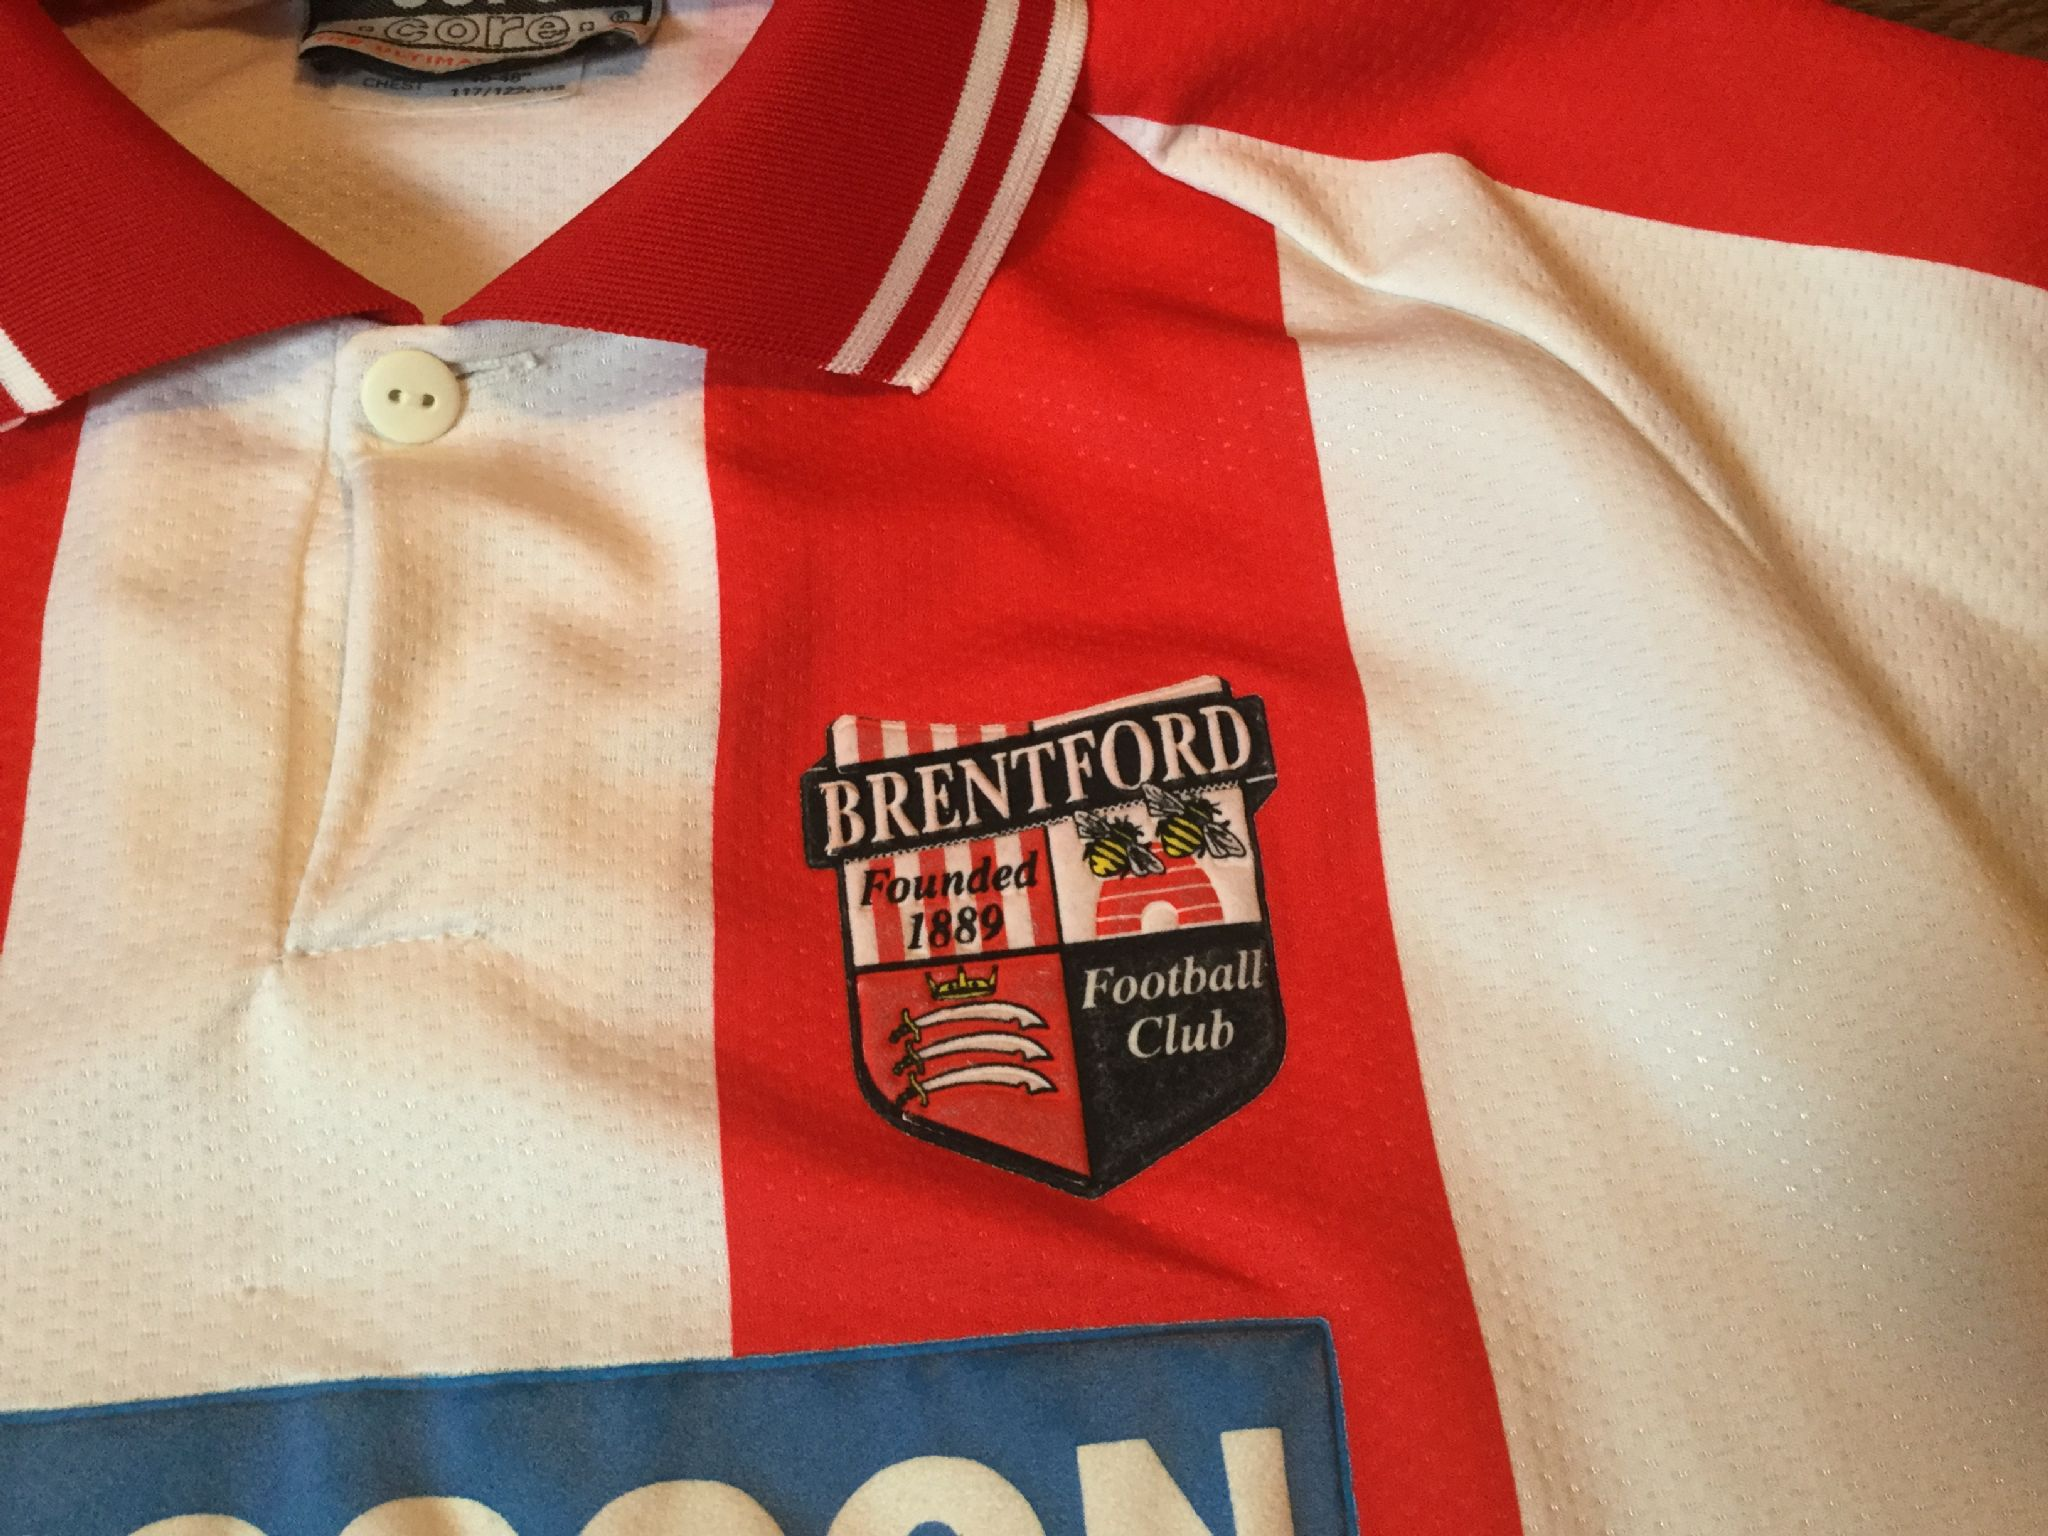 9874a625622d Global Classic Football Shirts | 1995 Brentford Vintage Retro Old Soccer  Jersey